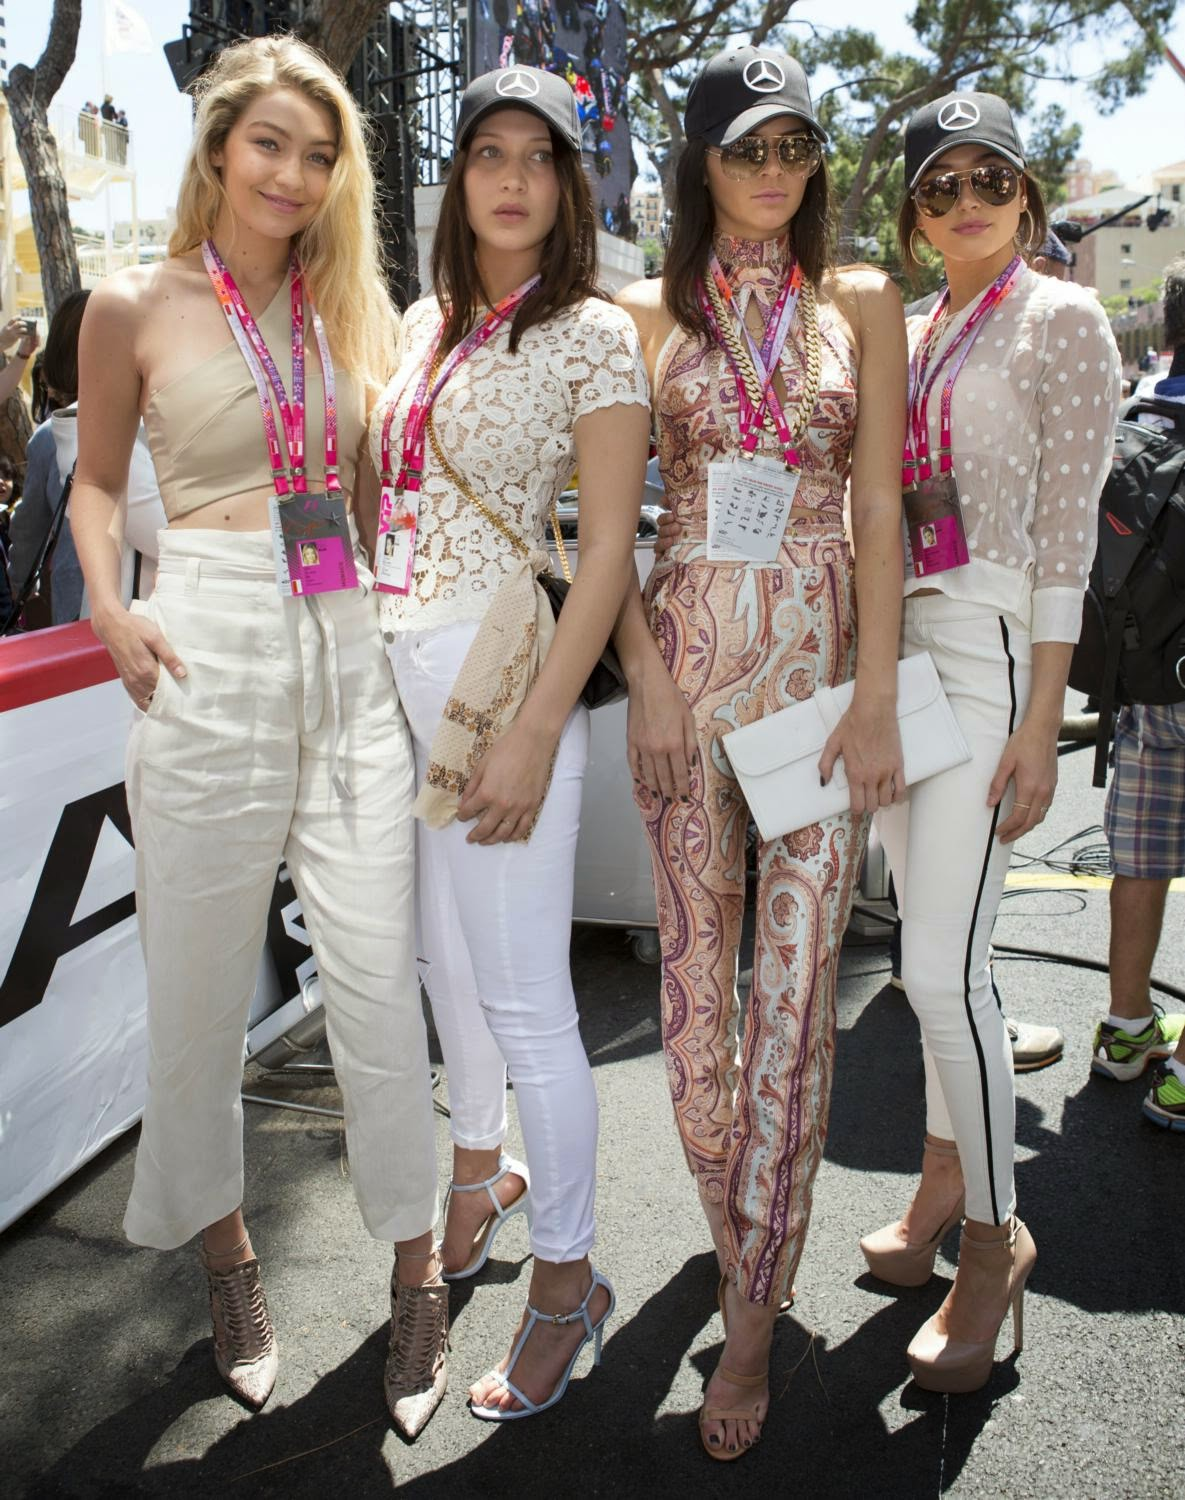 Gigi Hadid, Bella Hadid, Kendall Jenner and Hailey Baldwin at Formula 1 Grand Prix of Monaco